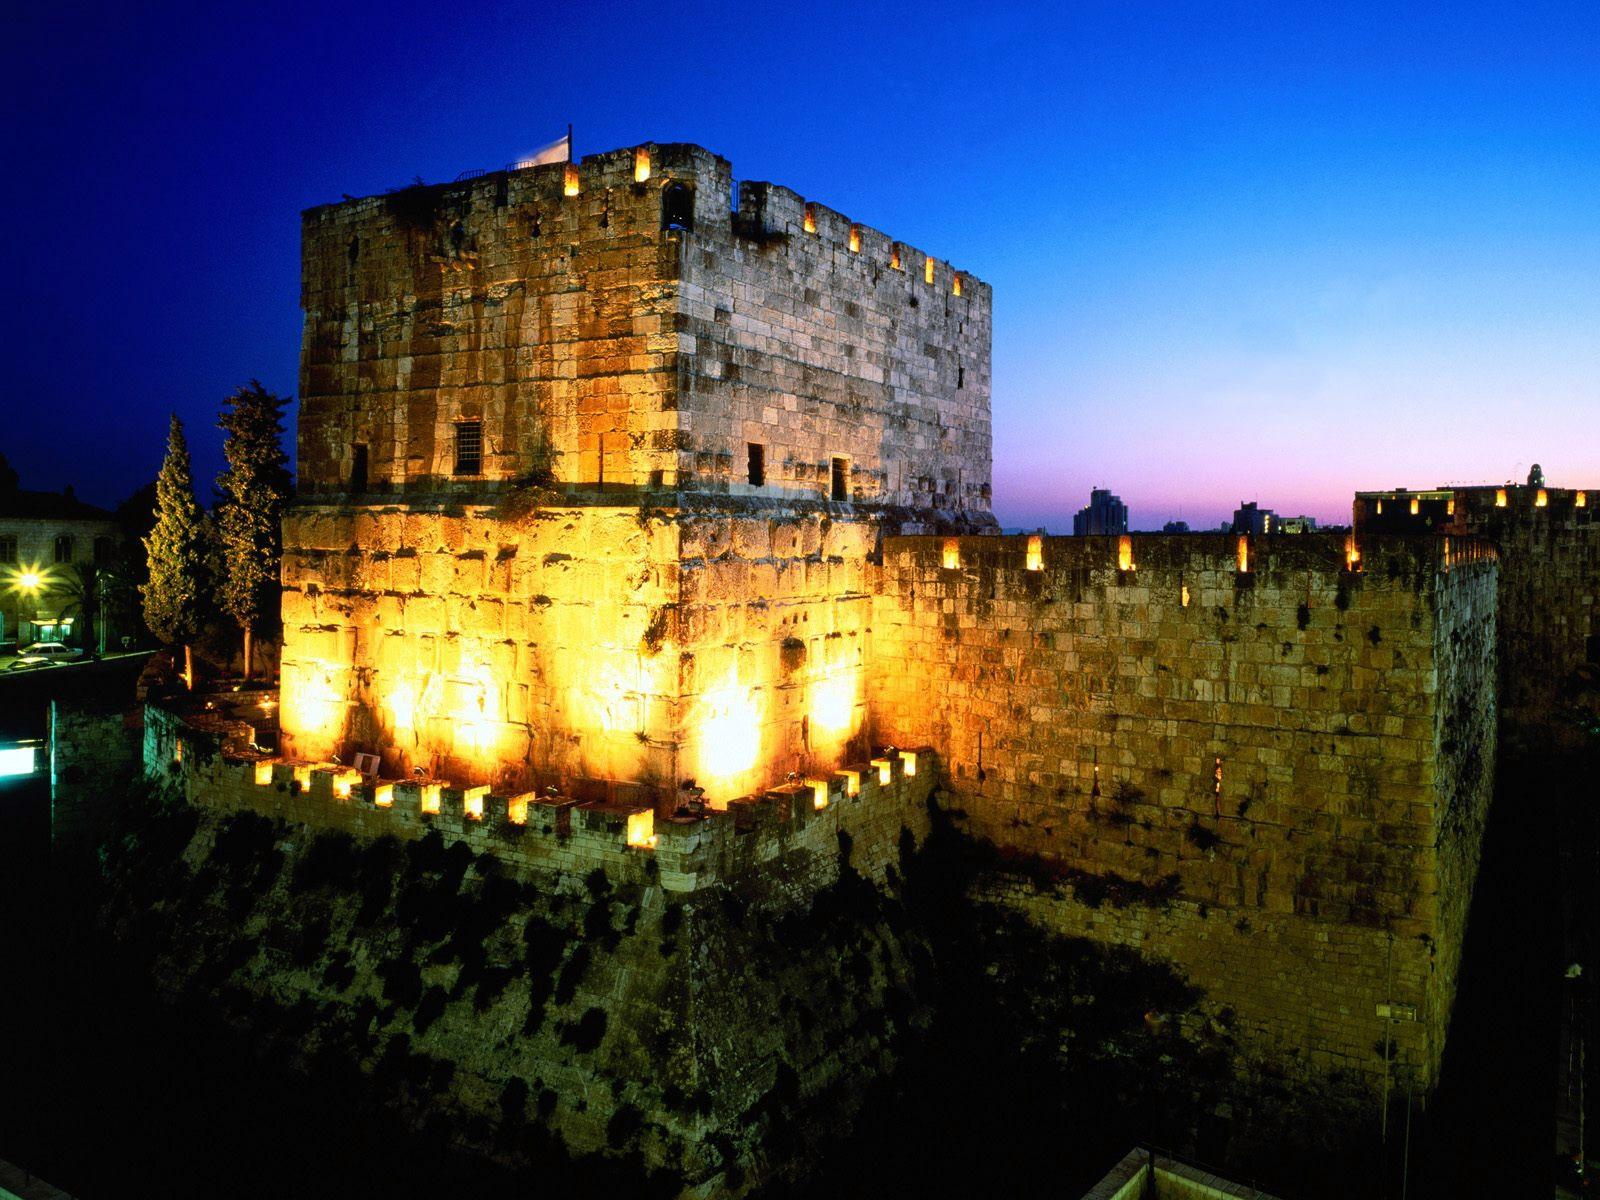 Israel-Wall-Israel-Castle-Tour-Destination